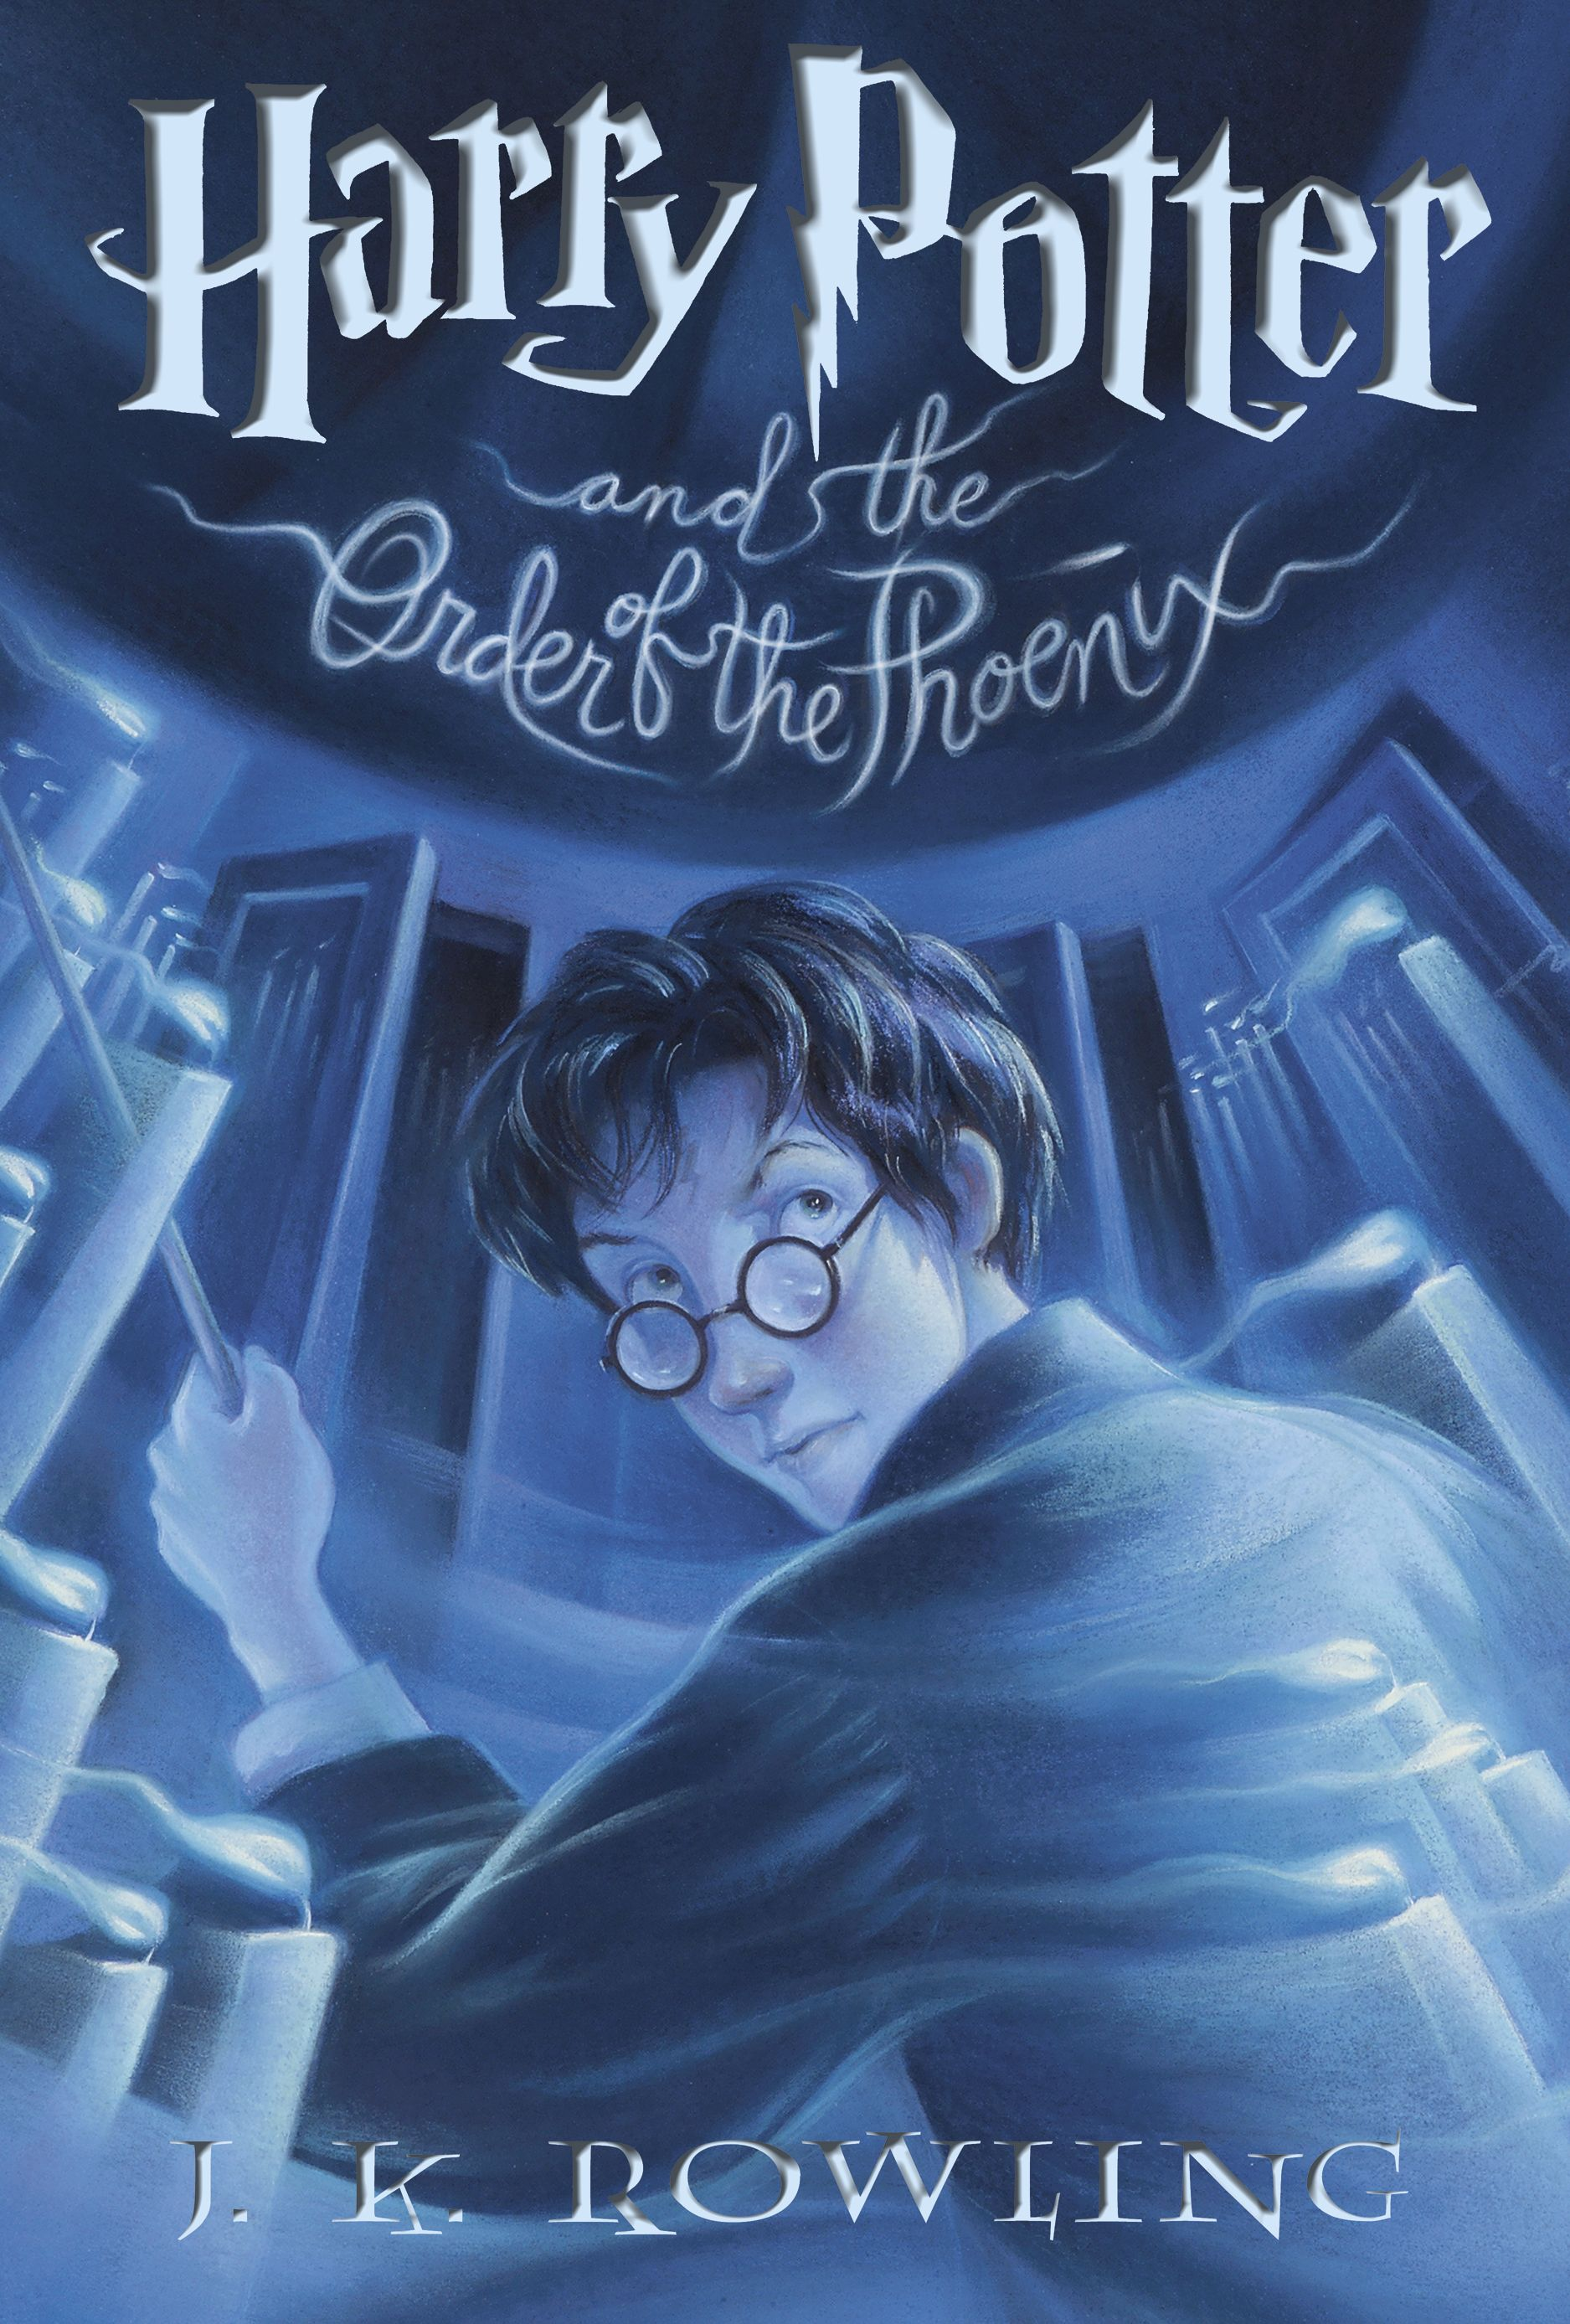 Harry Potter and the Order of the Phoenix by J.K. Rowling <== Any book format is fine with me [hardcover, paperback, e-book (pdf)]